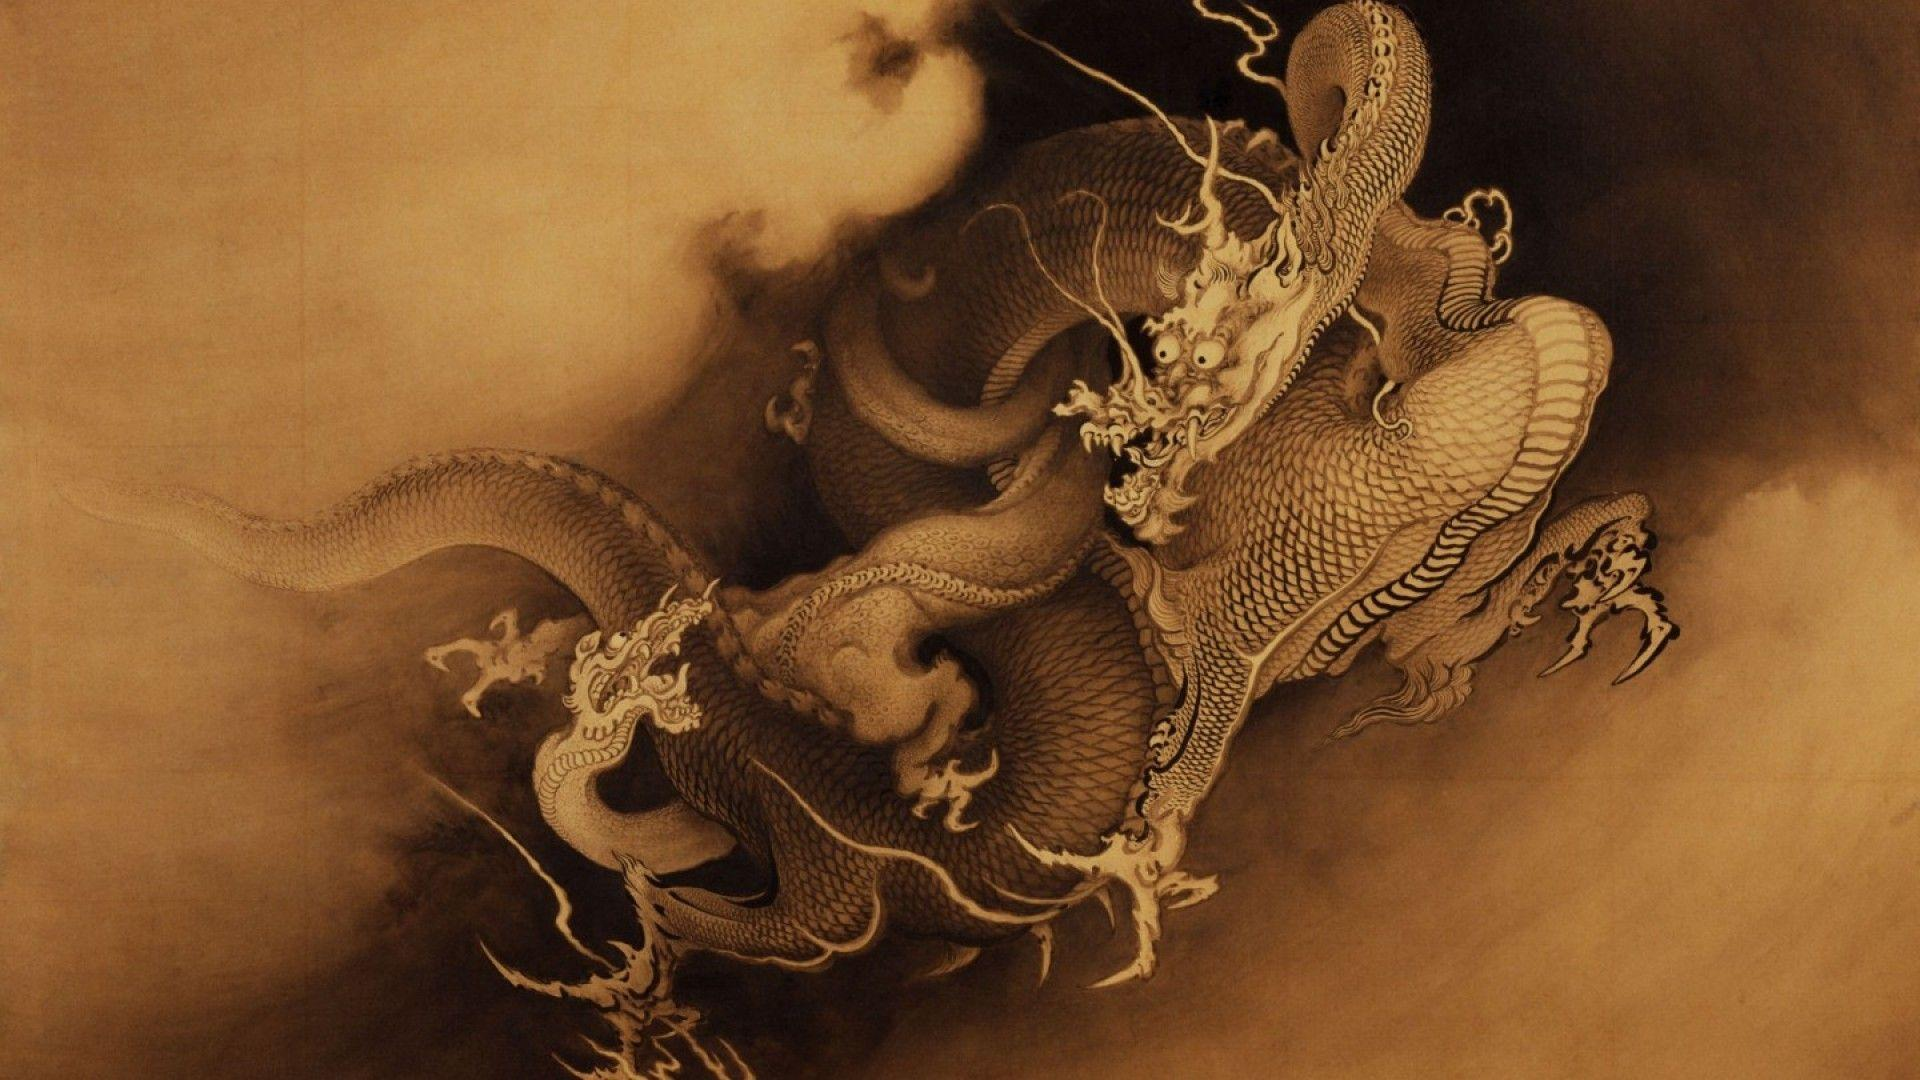 10 Top Blue Dragon Wallpapers 3d Full Hd 1920 1080 For Pc: Dragon Wallpapers 1080p